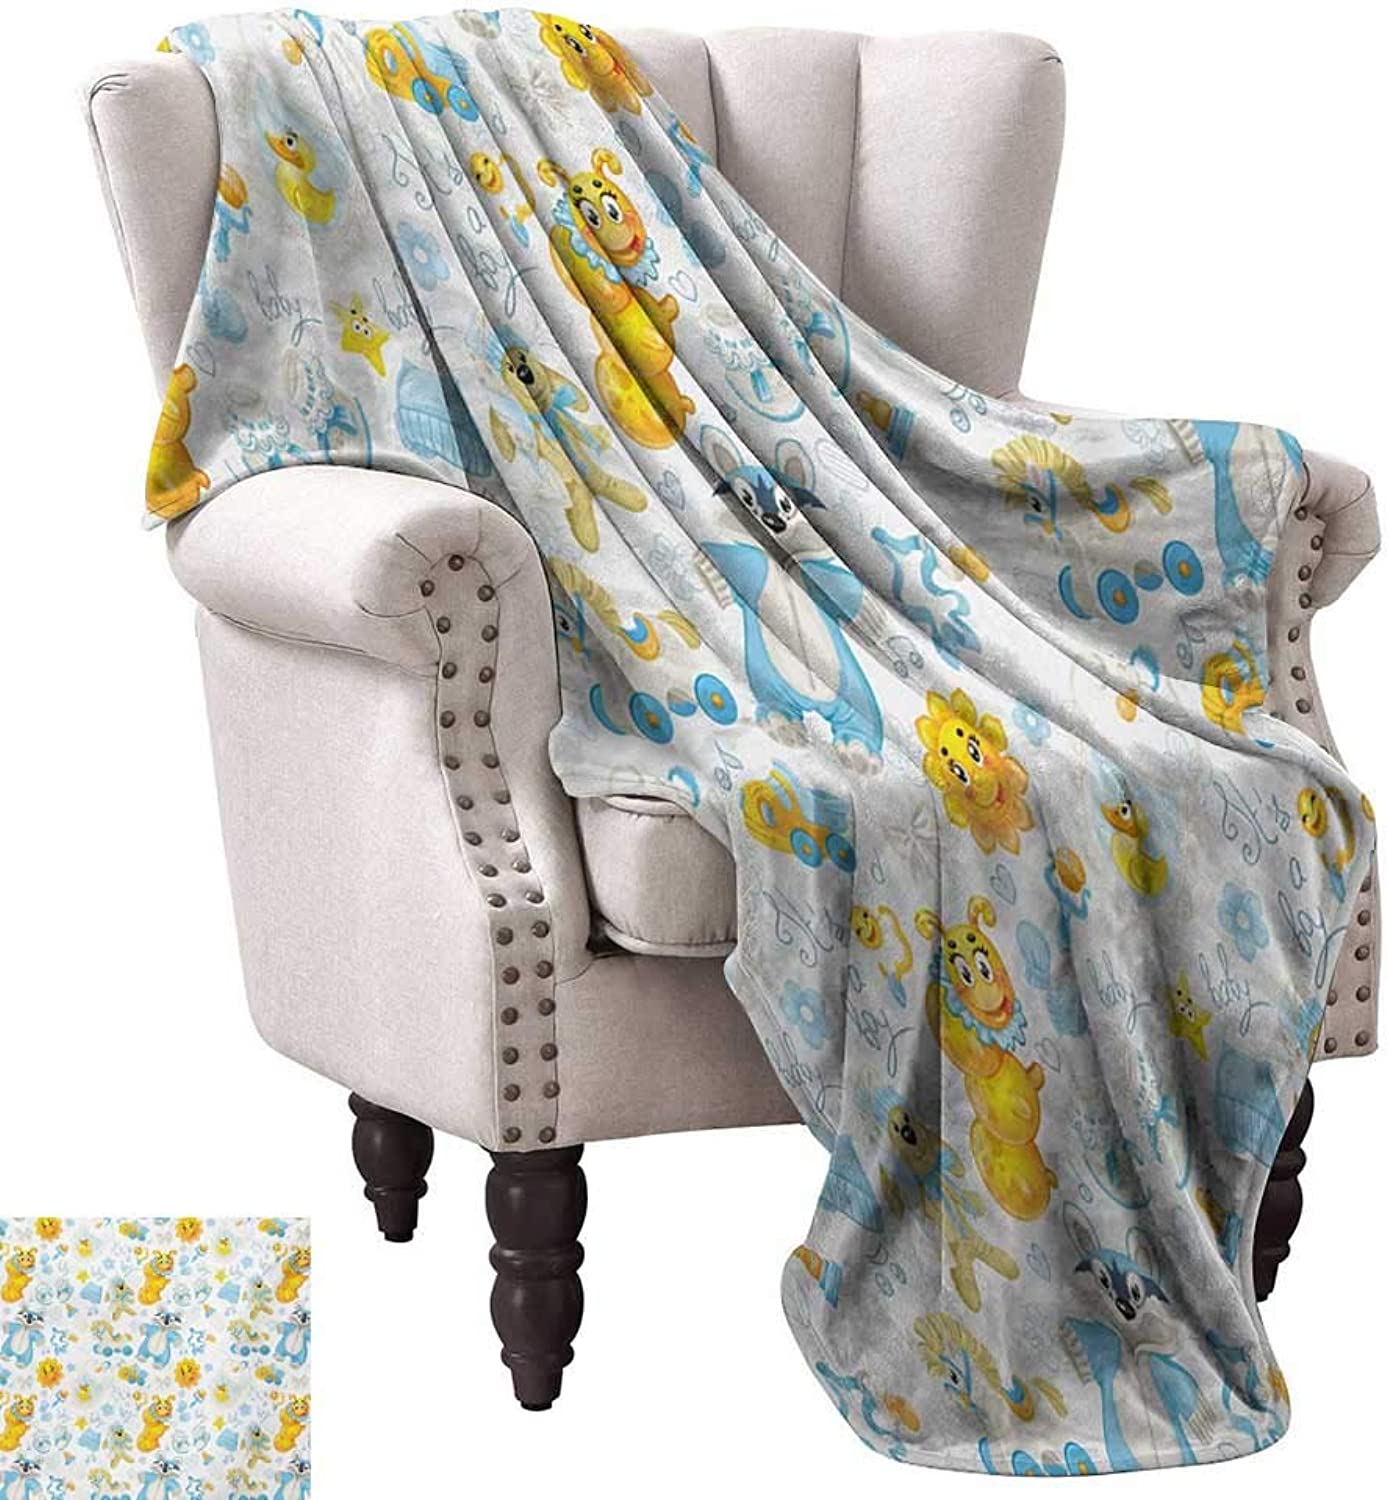 Anyangeight Throw Blanket,Its a Boy Image with Happy Sun Raccoon in Pyjamas bluee Hats and Pacifier 60 x50 ,Super Soft and Comfortable,Suitable for Sofas,Chairs,beds